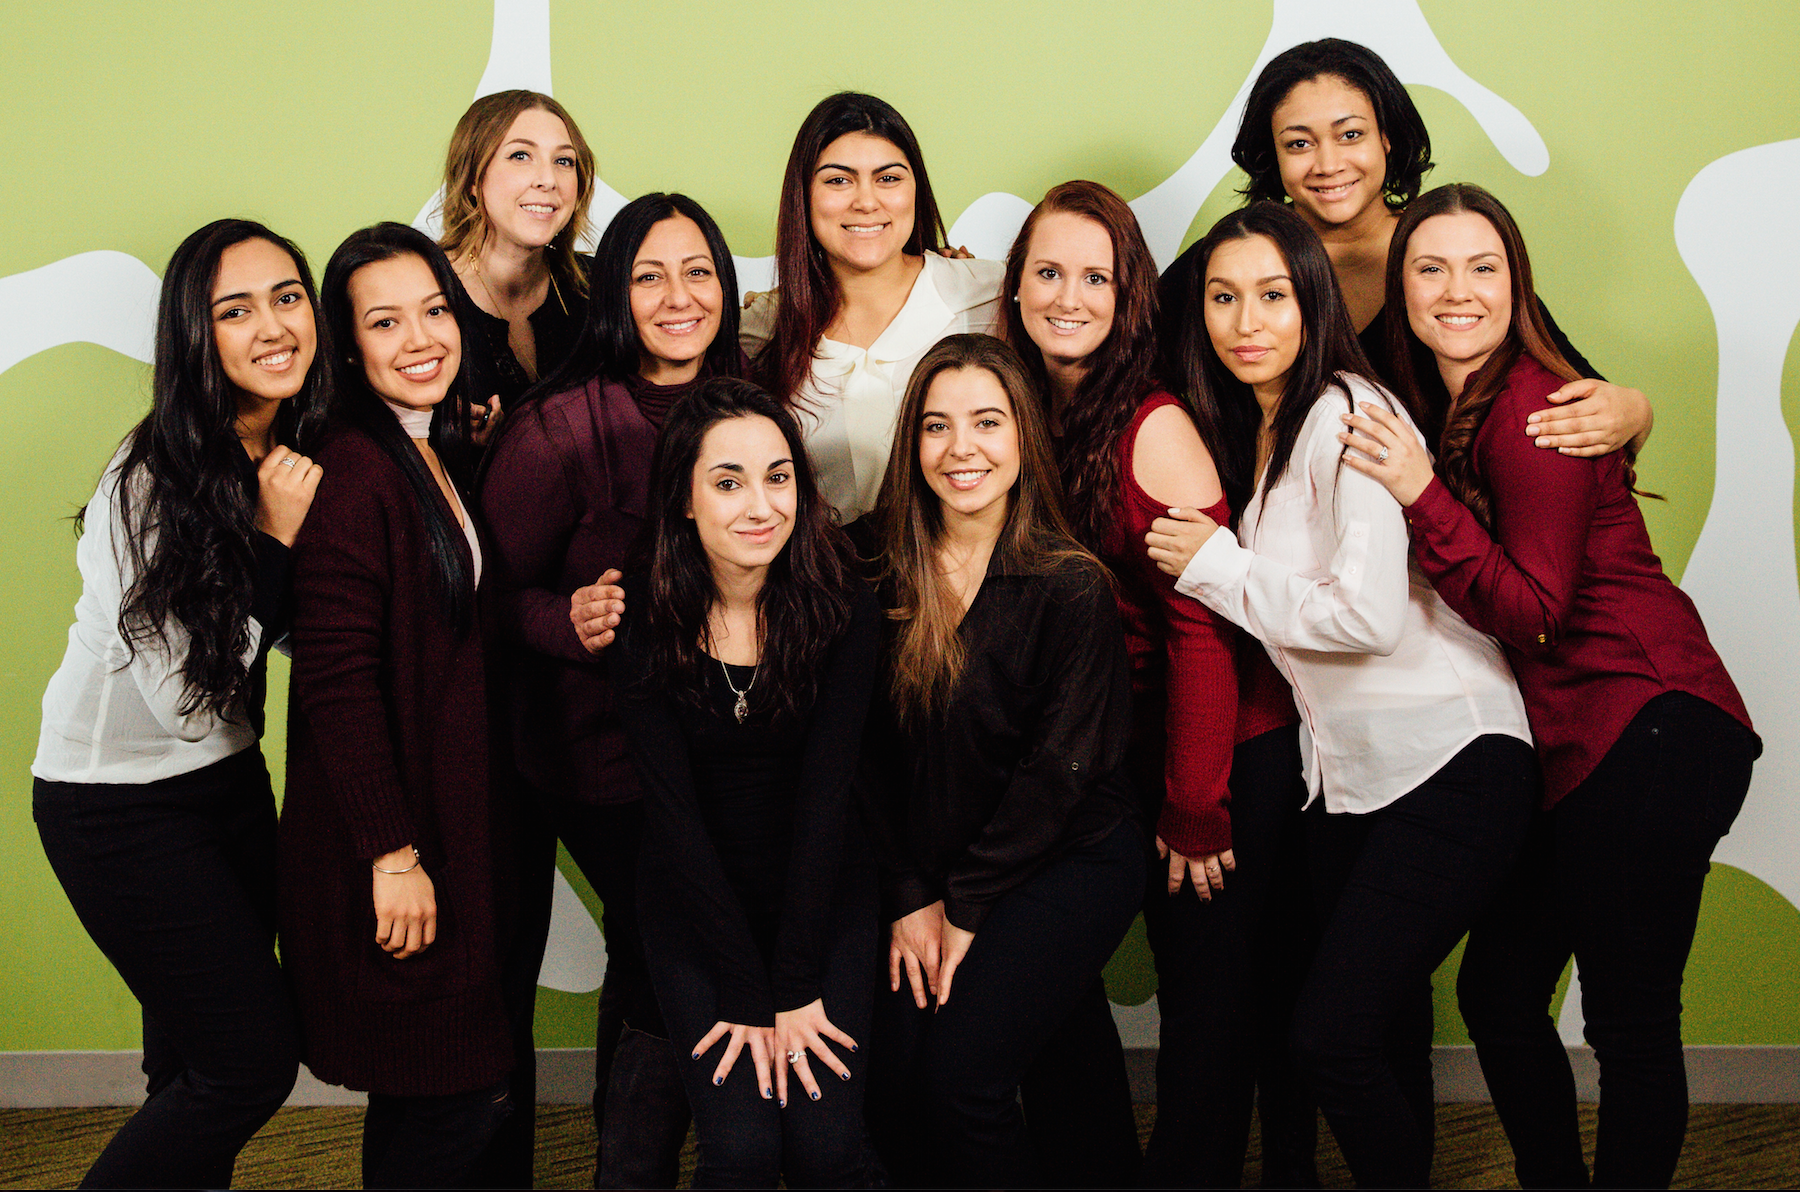 waltham dental team of wow dental group